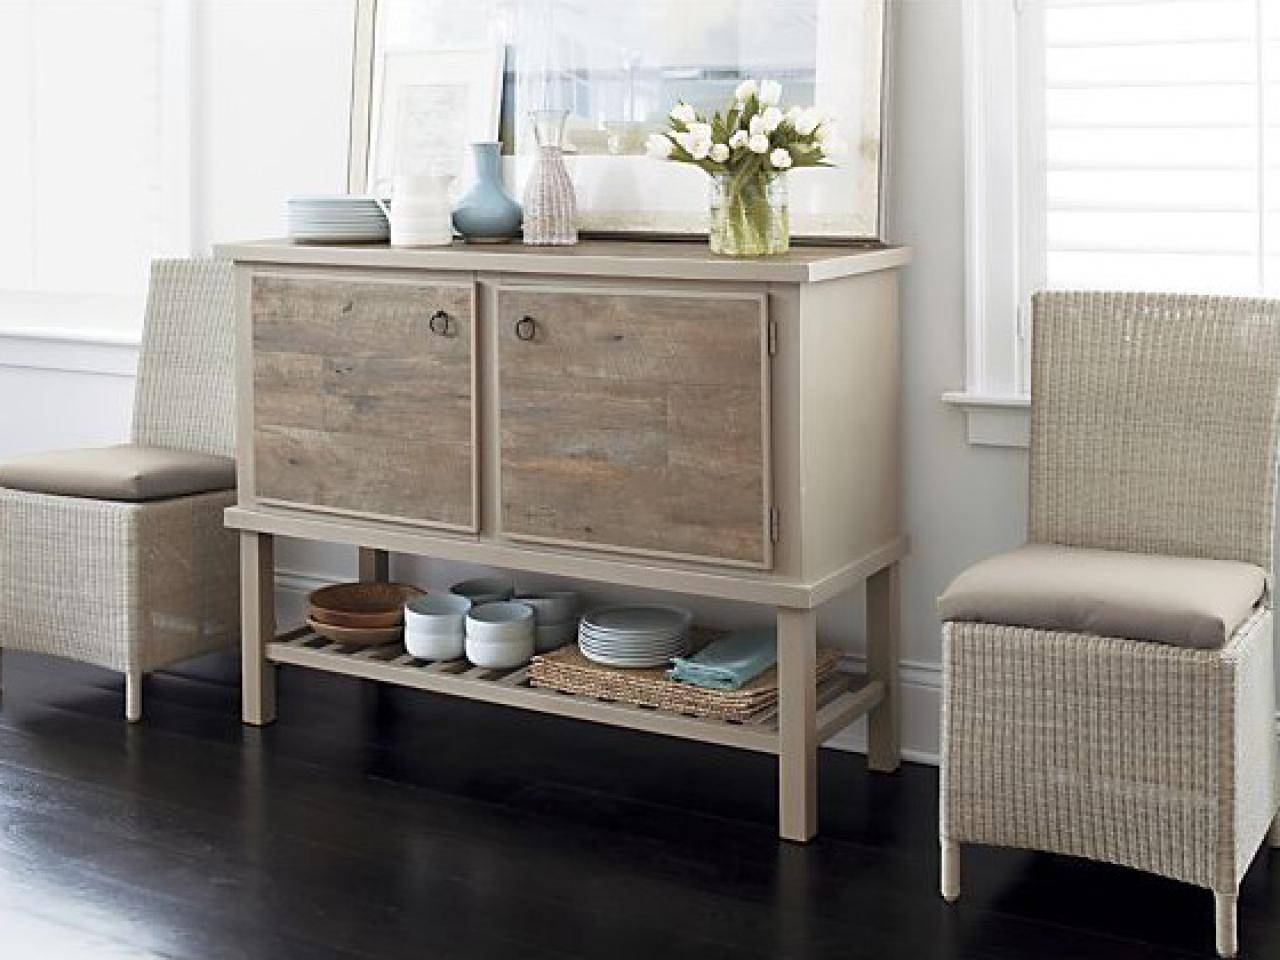 How To Distress Furniture | Hgtv inside Distressed Wood Sideboards (Image 16 of 30)